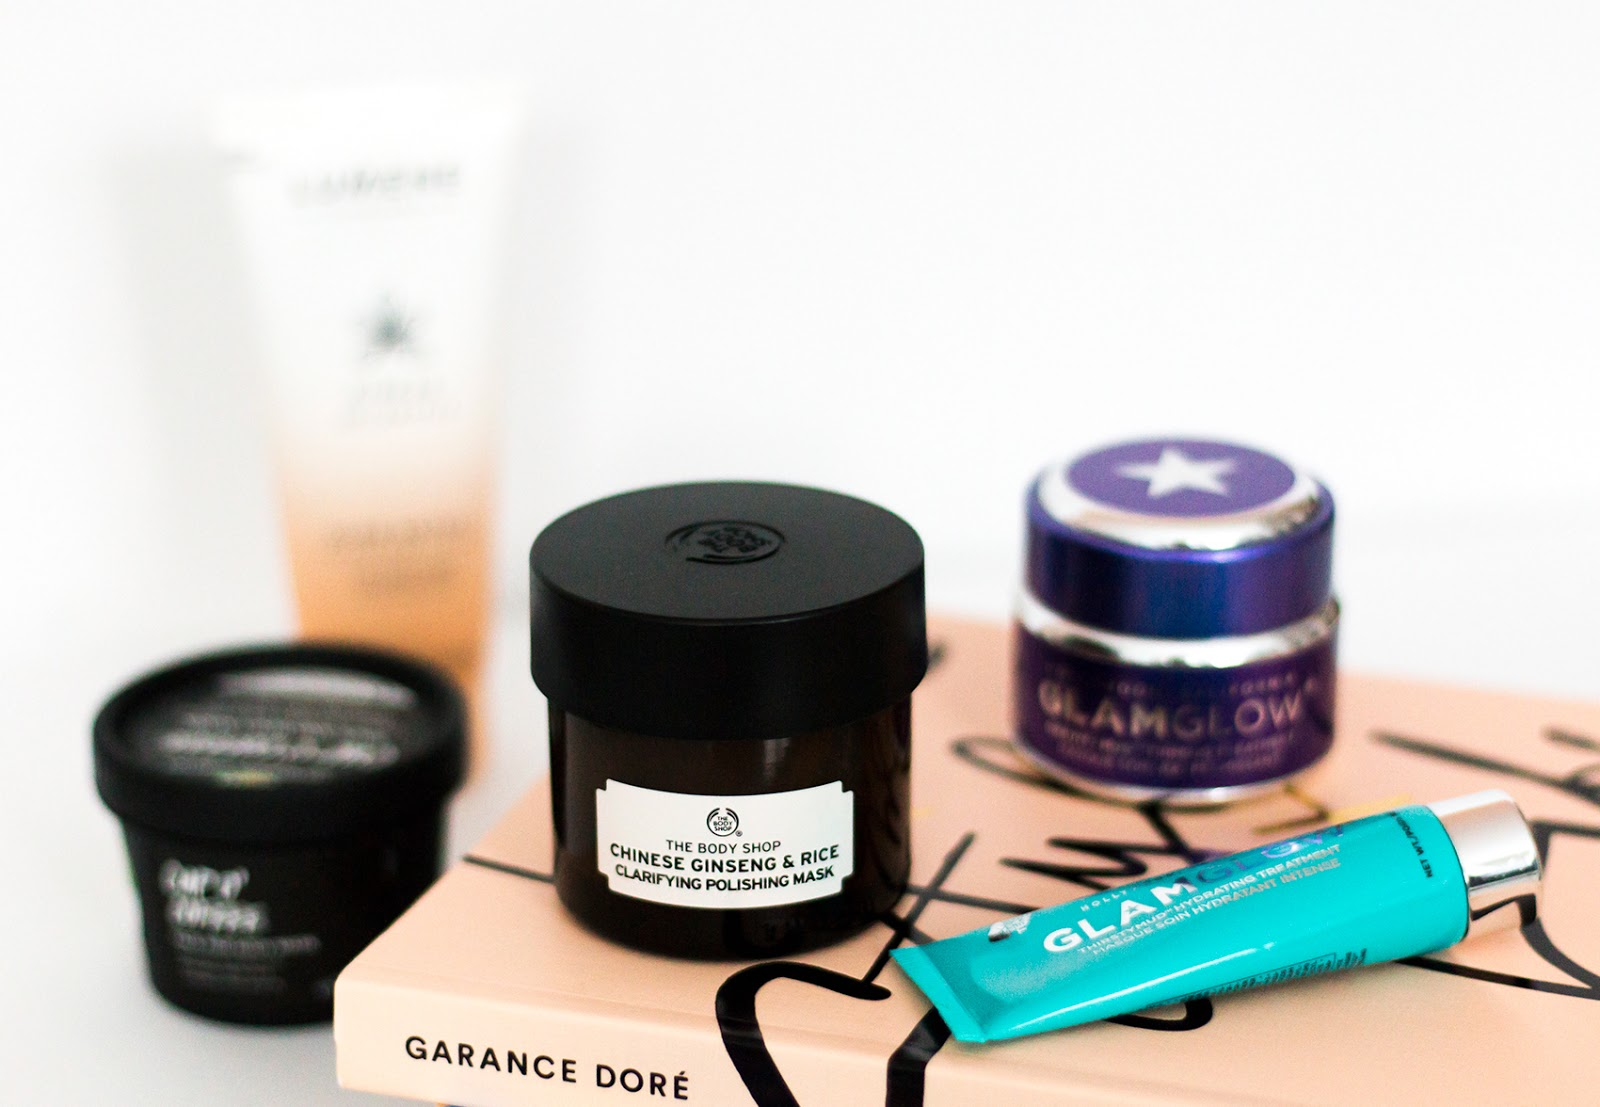 Face mask | glamglow | the body shop